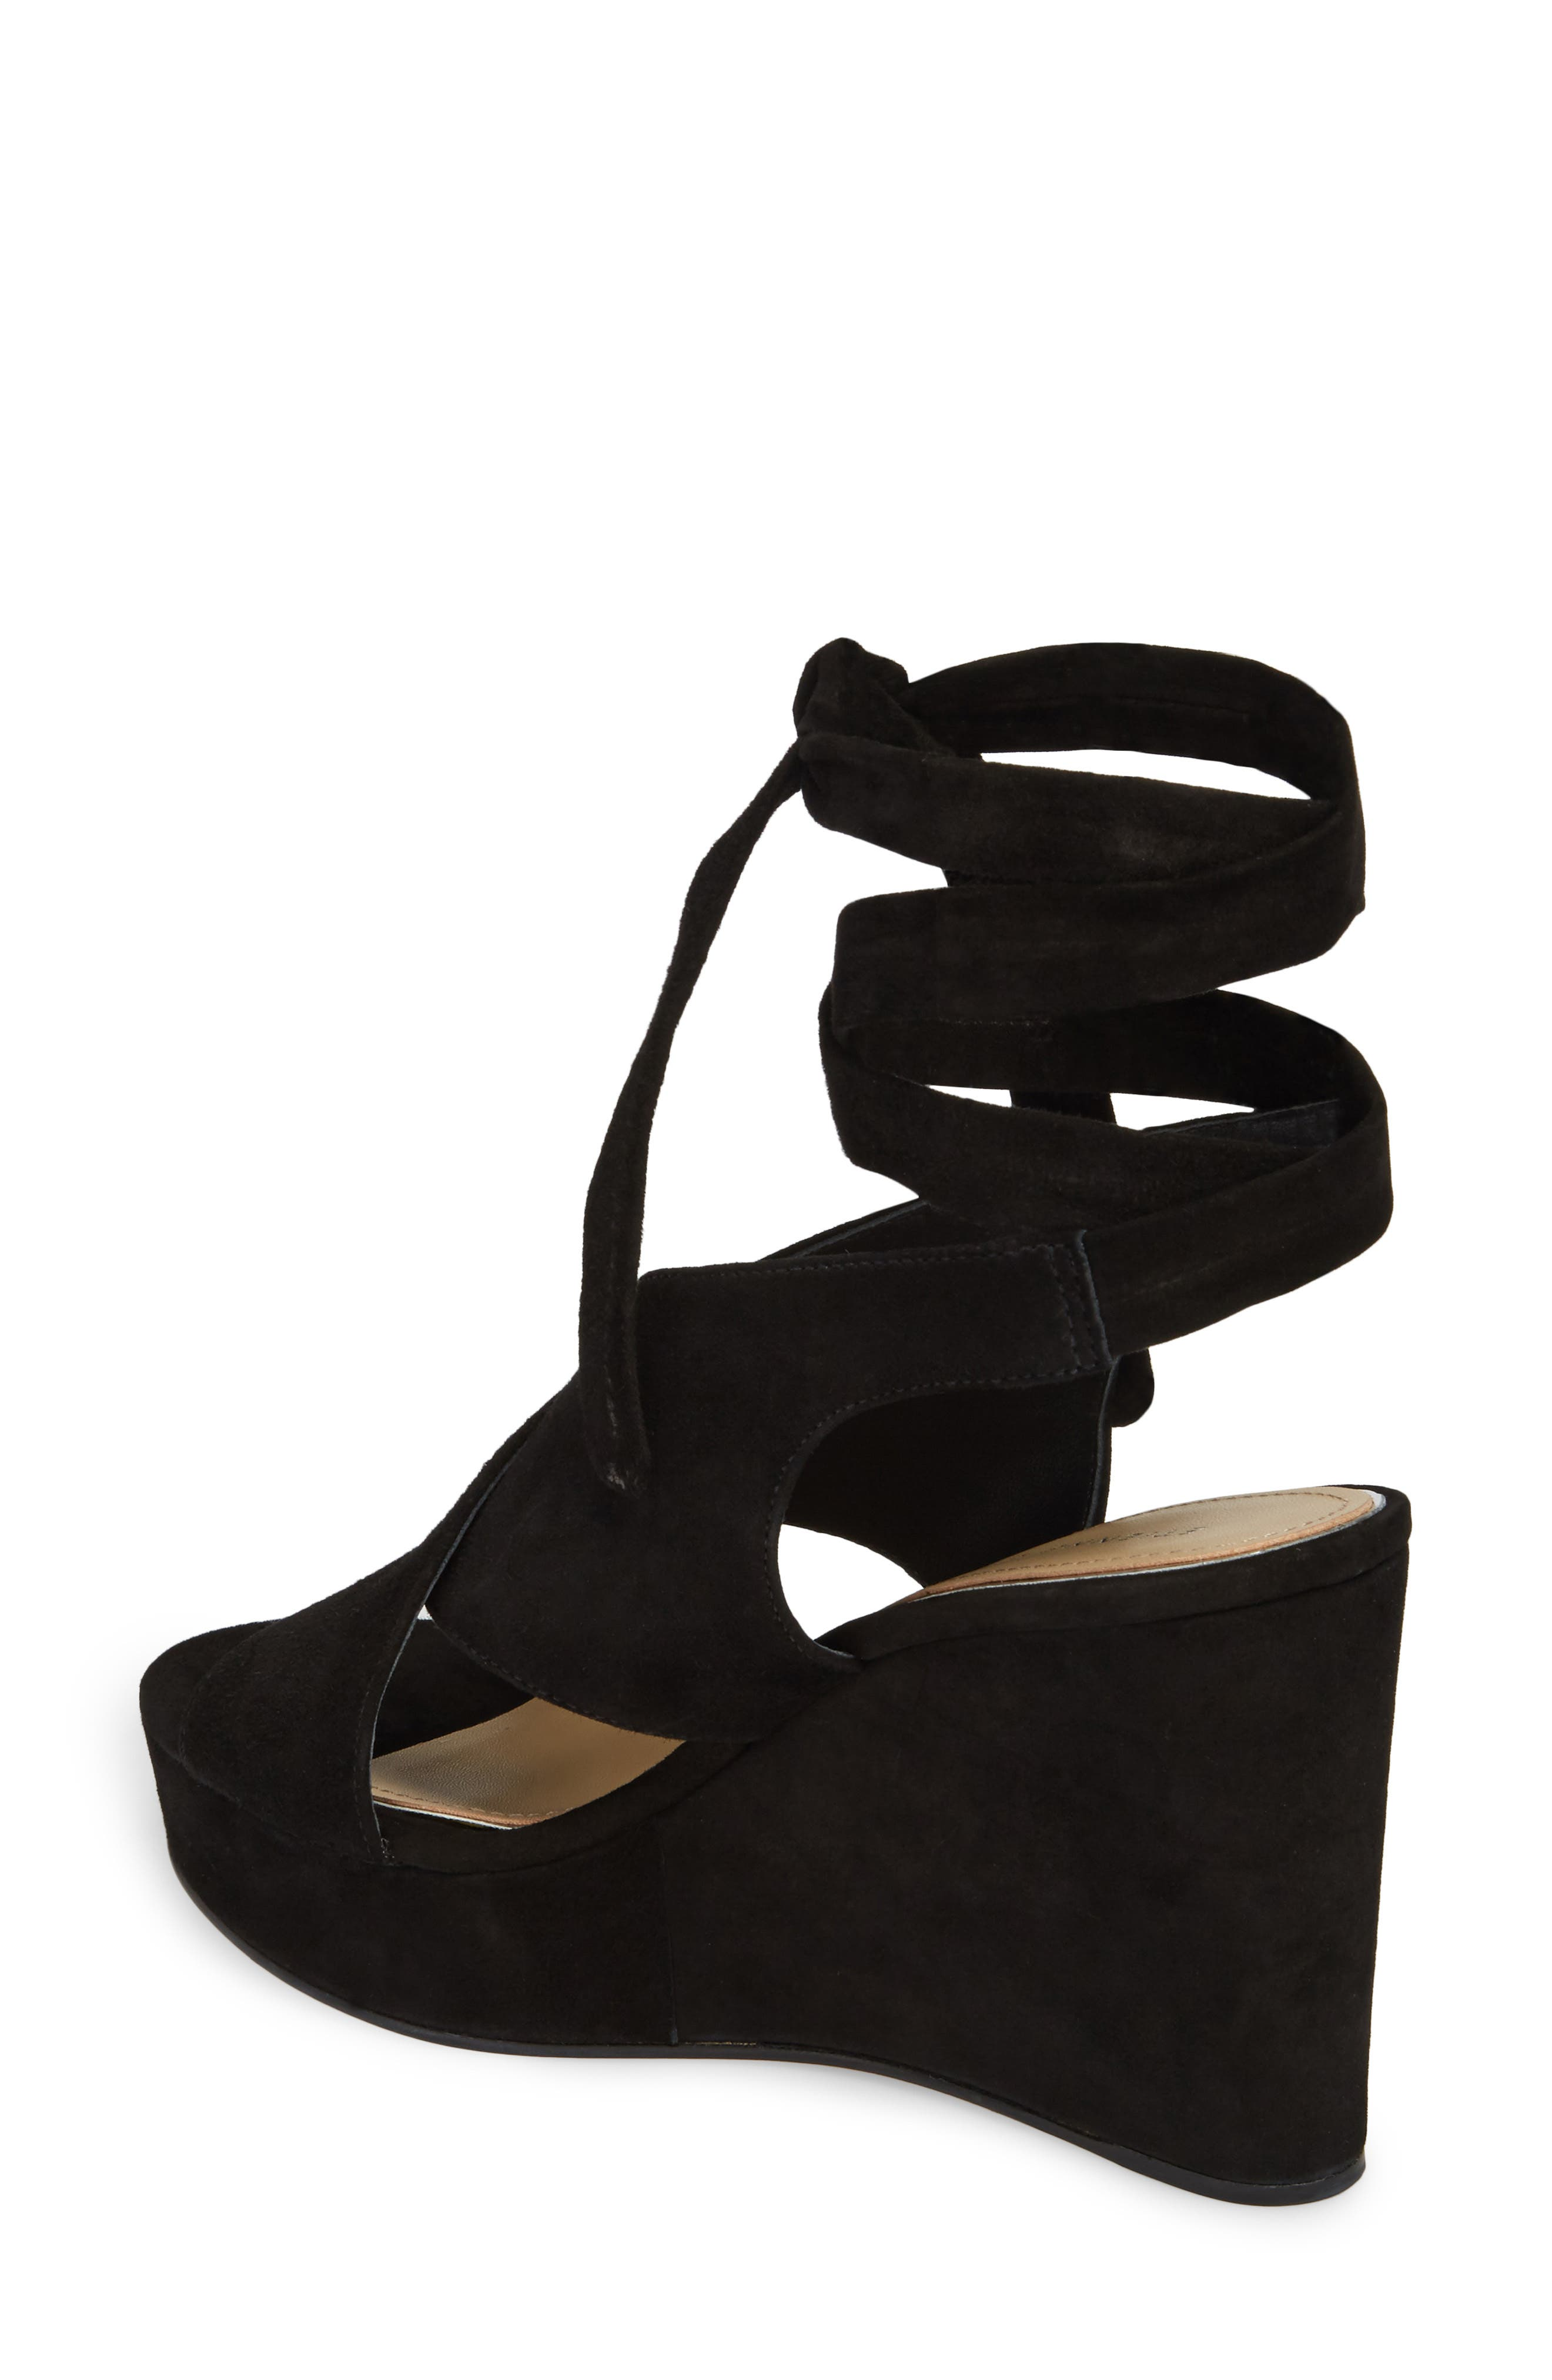 Dominica Platform Wedge Sandal,                             Alternate thumbnail 2, color,                             BLACK SUEDE